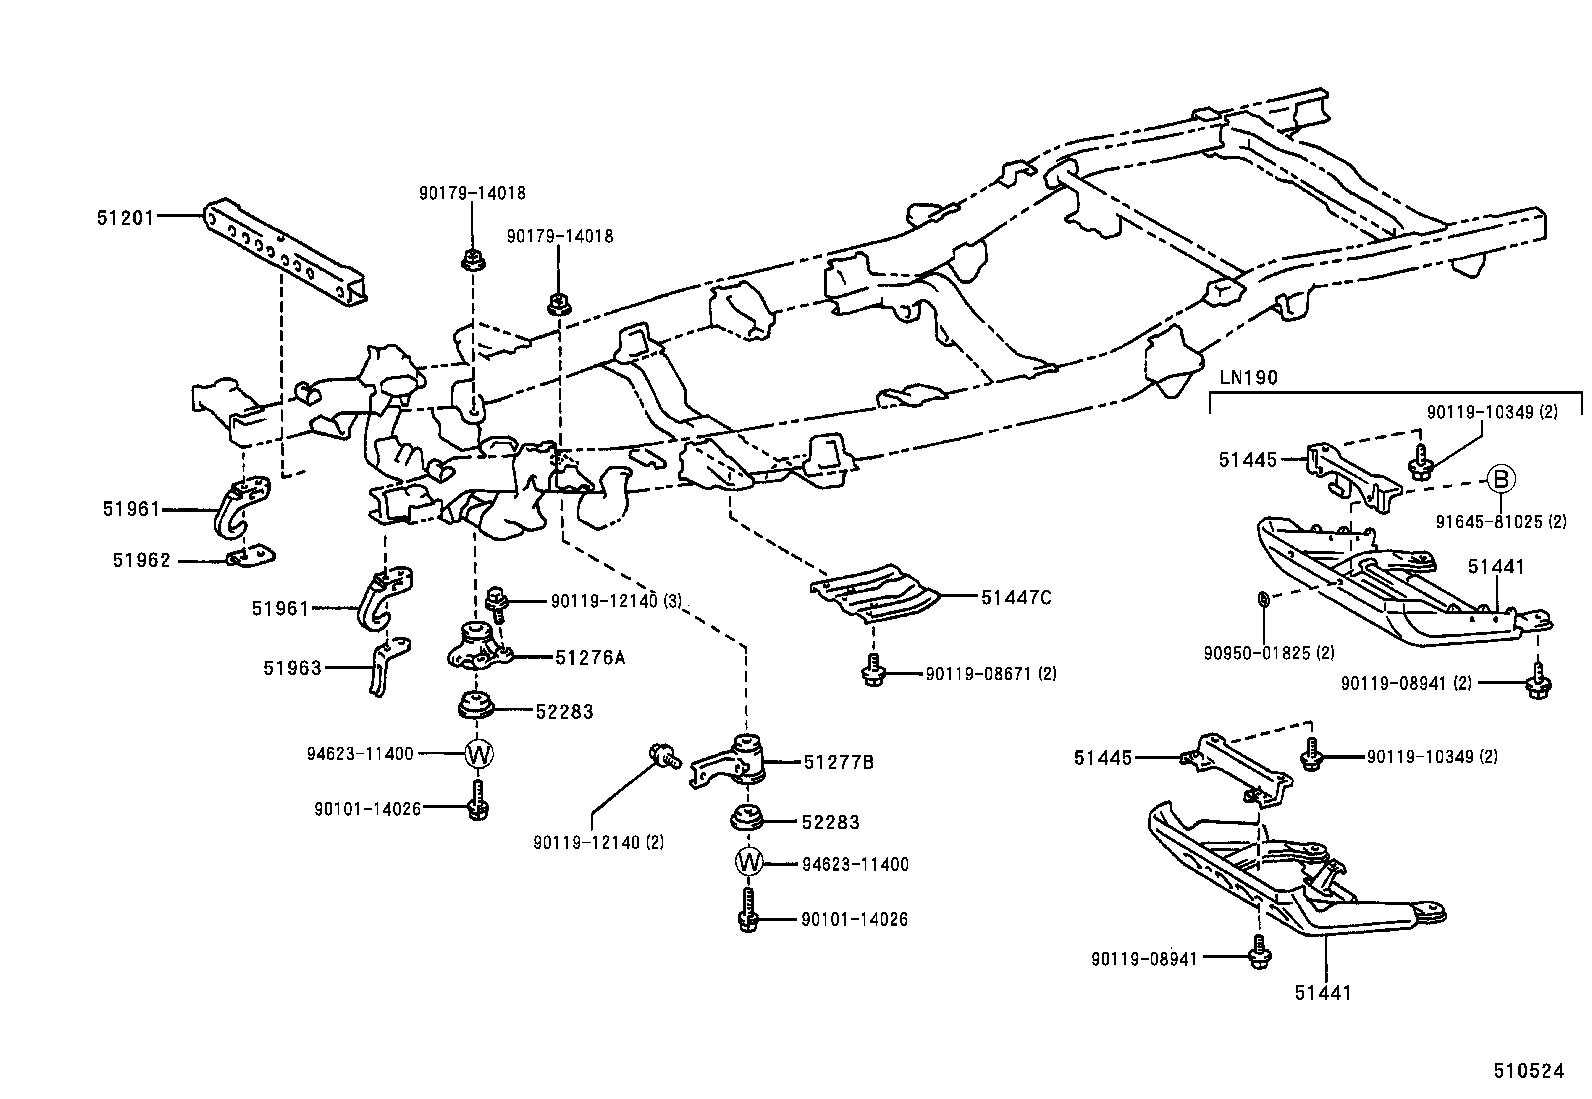 2003 Toyota Camry Parts Diagram further 2011 Toyota Camry Instructions How To Remove Front Bumper likewise 2001 Toyota Highlander Bumper Parts Diagram Html likewise 1984 Toyota Celica Wiring Diagram together with Nissan Altima Fuel Pump Relay Location Moreover 2000. on 2001 toyota solara bumper